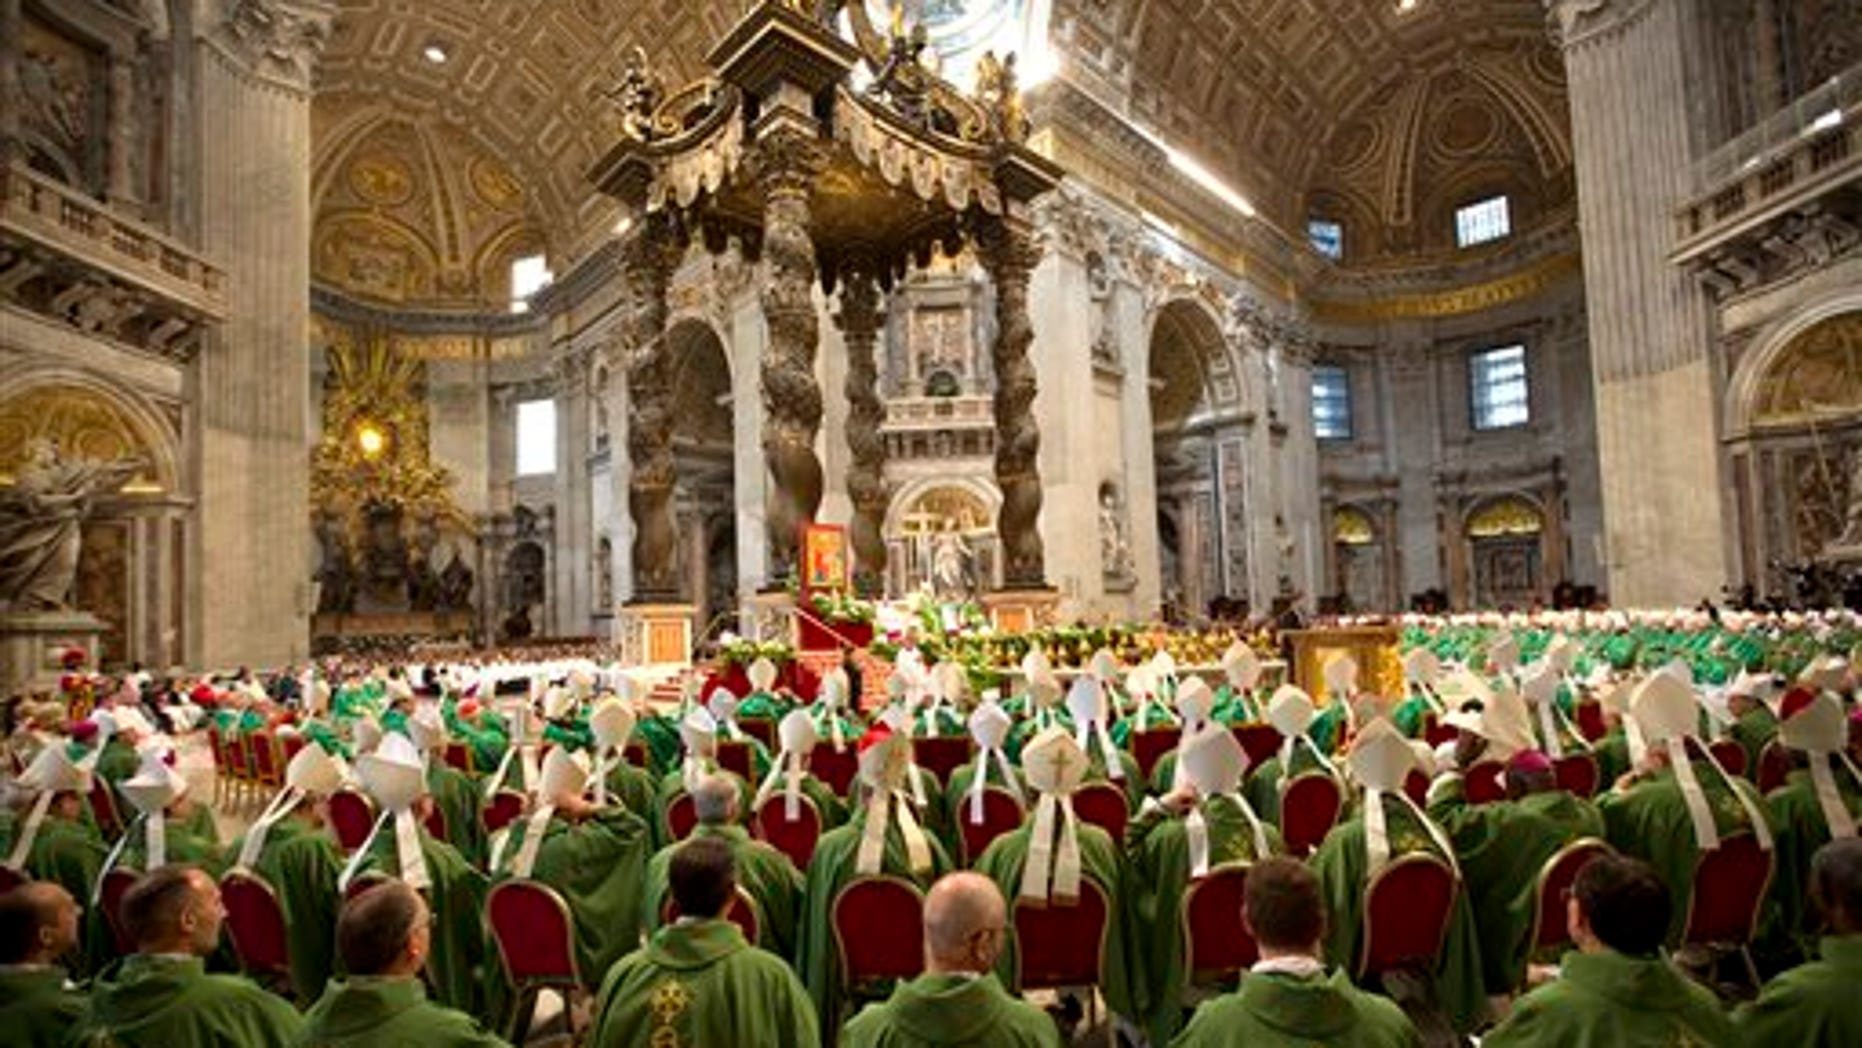 Pope Francis celebrates a Mass to mark the end of the Synod of bishops at the Vatican Sunday. (AP Photo/Alessandra Tarantino)